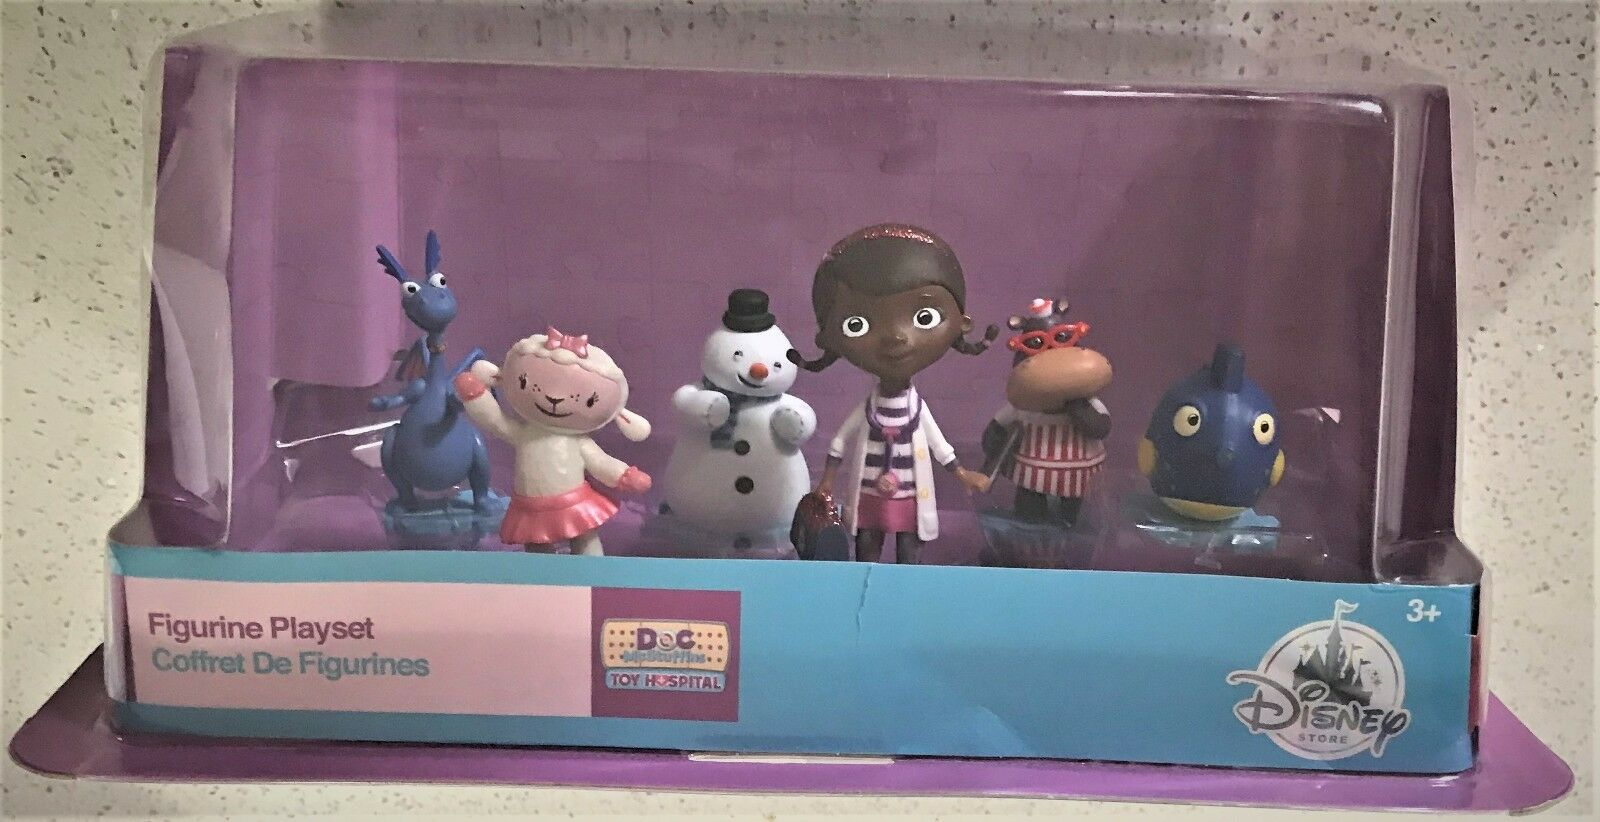 Doc McStuffins Figures Play Set Mobile Ages 3+ Toy Mobile Set Doll Girls Lambie Stuffy Play 0bc935